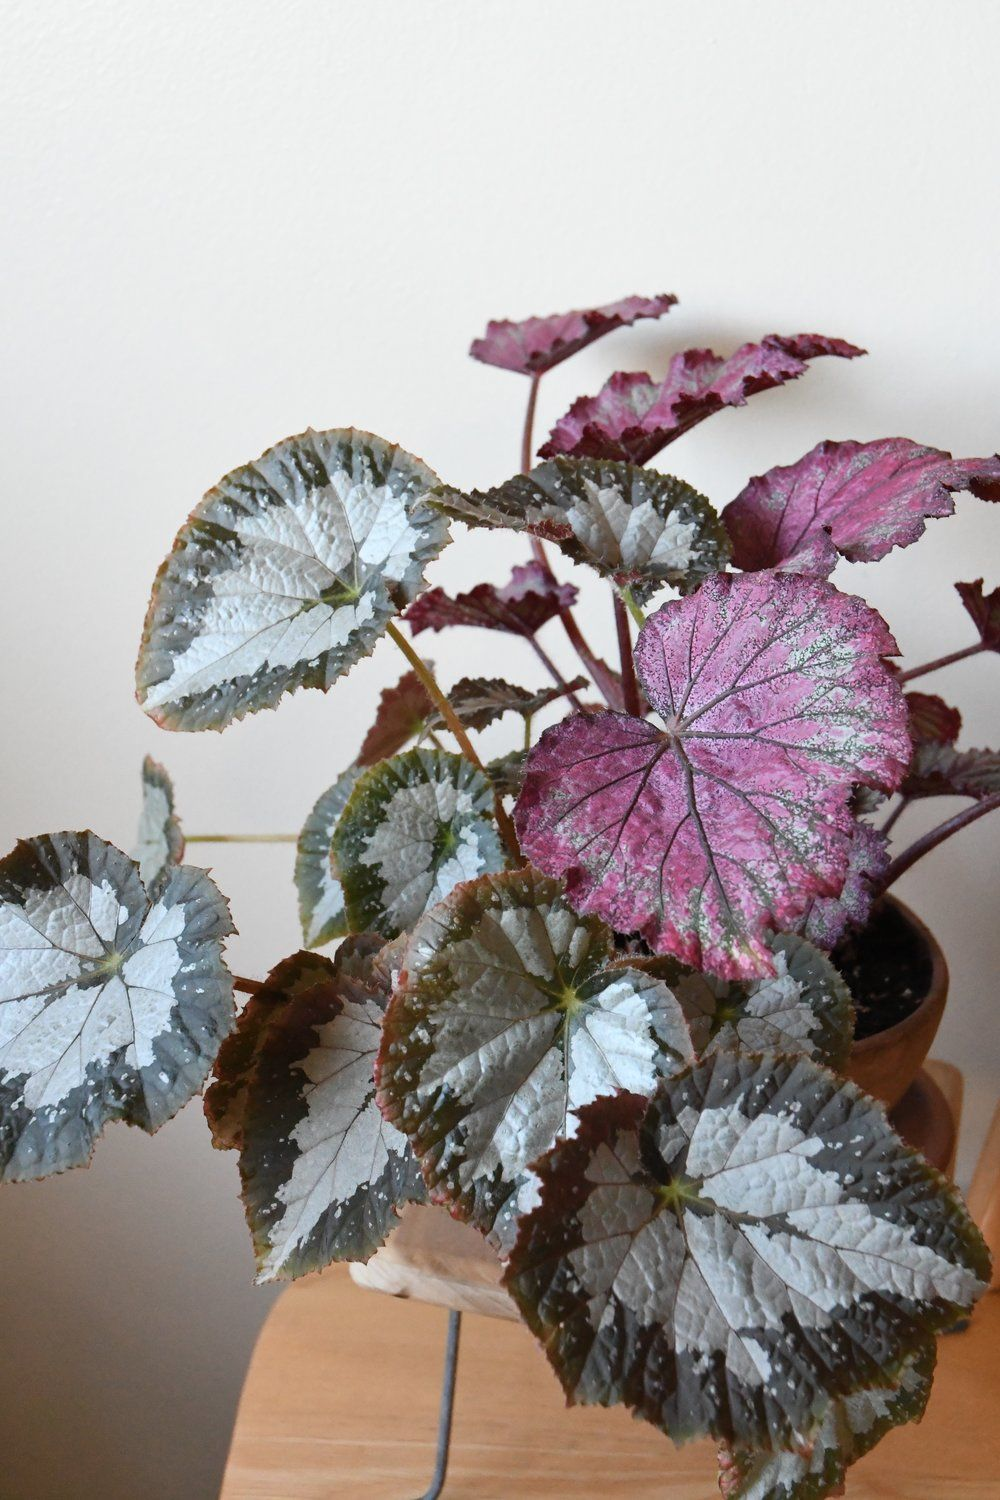 Begonia Jurassic Red Splash With Begonia Starry Nights Houseplants Indoor Apartmentjungle Botanical Bun House Plants Little Plants Begonia Maculata